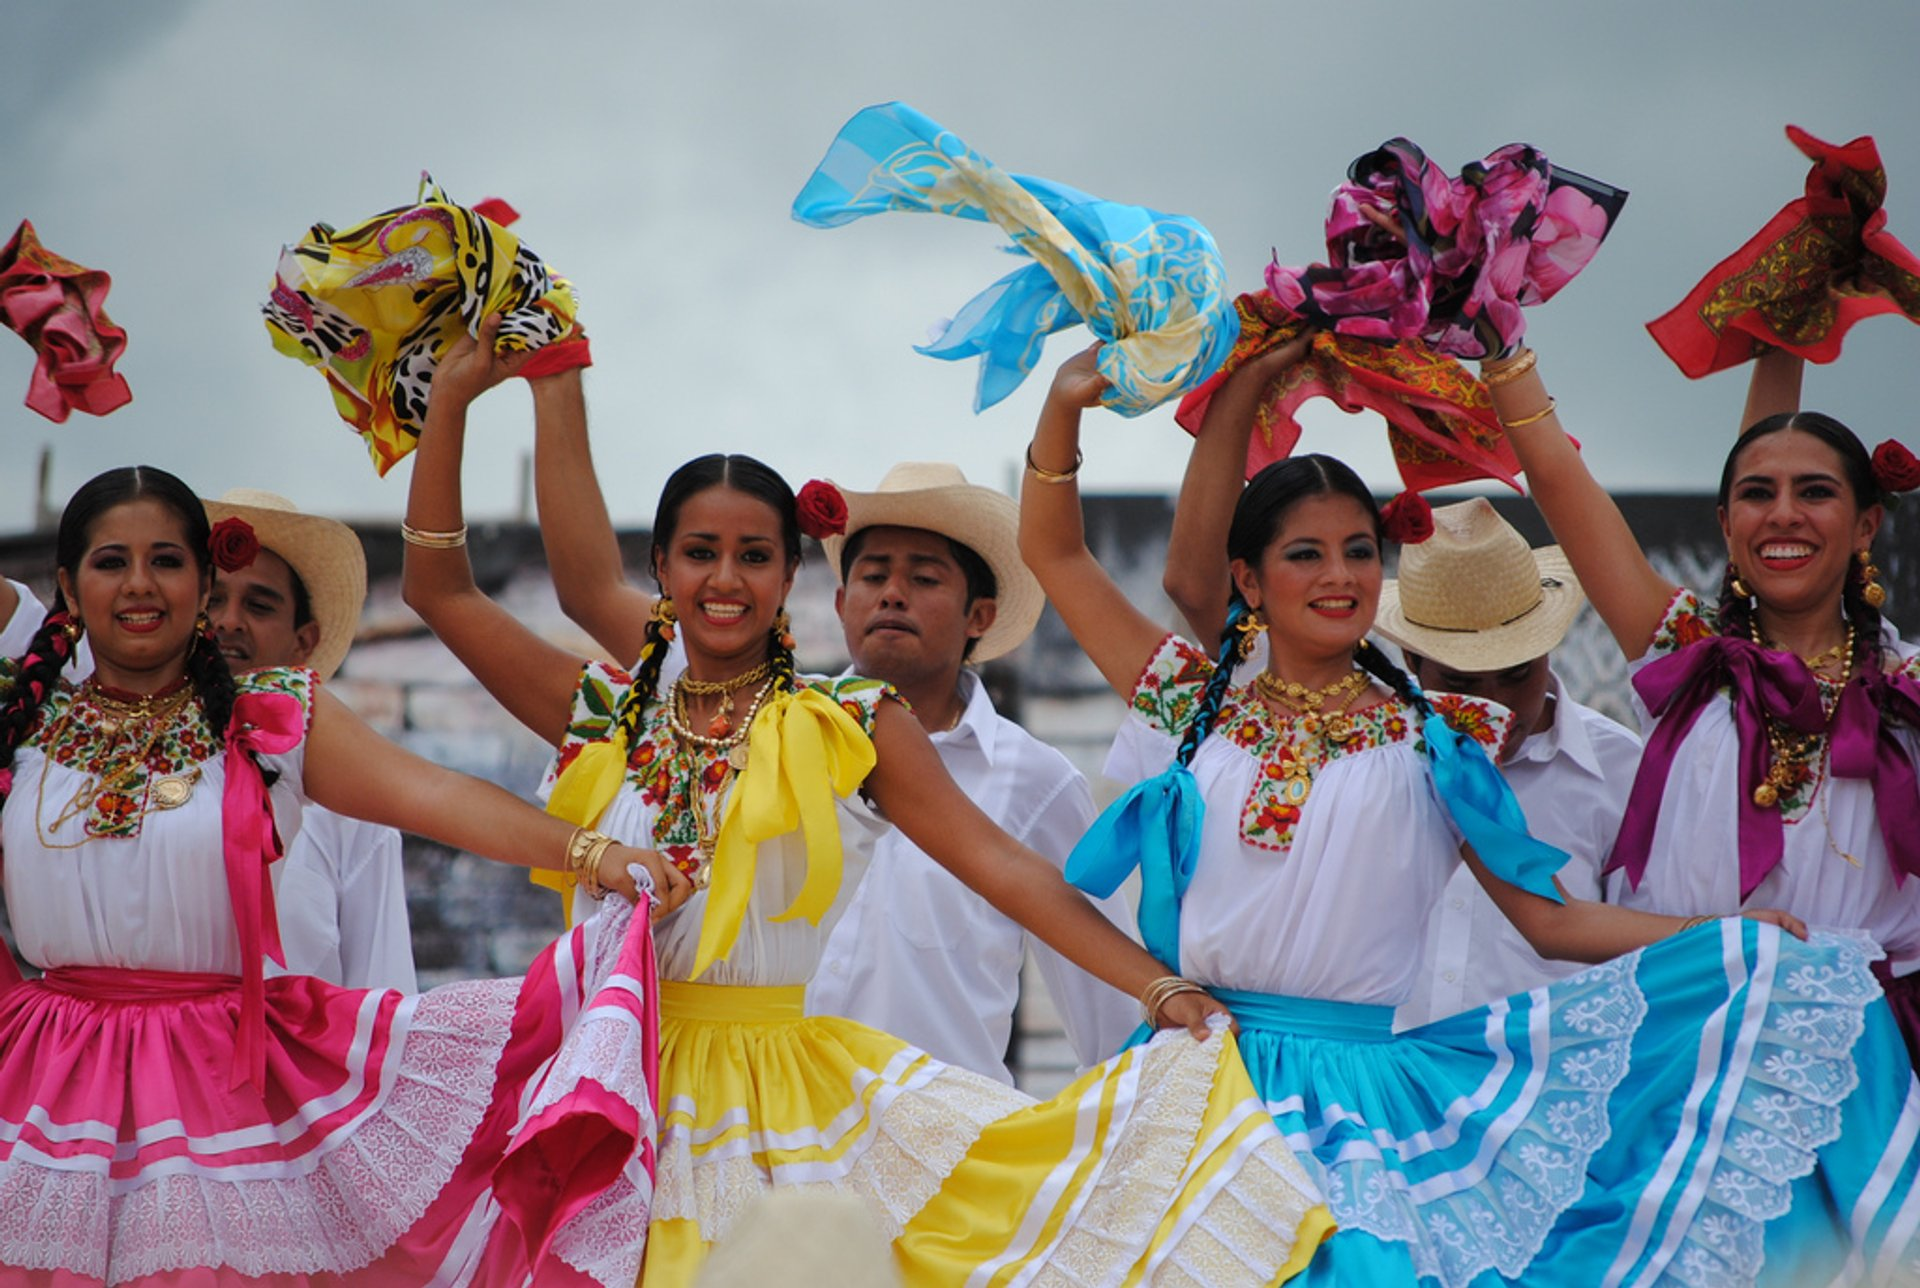 Guelaguetza Festival in Mexico 2020 - Best Time